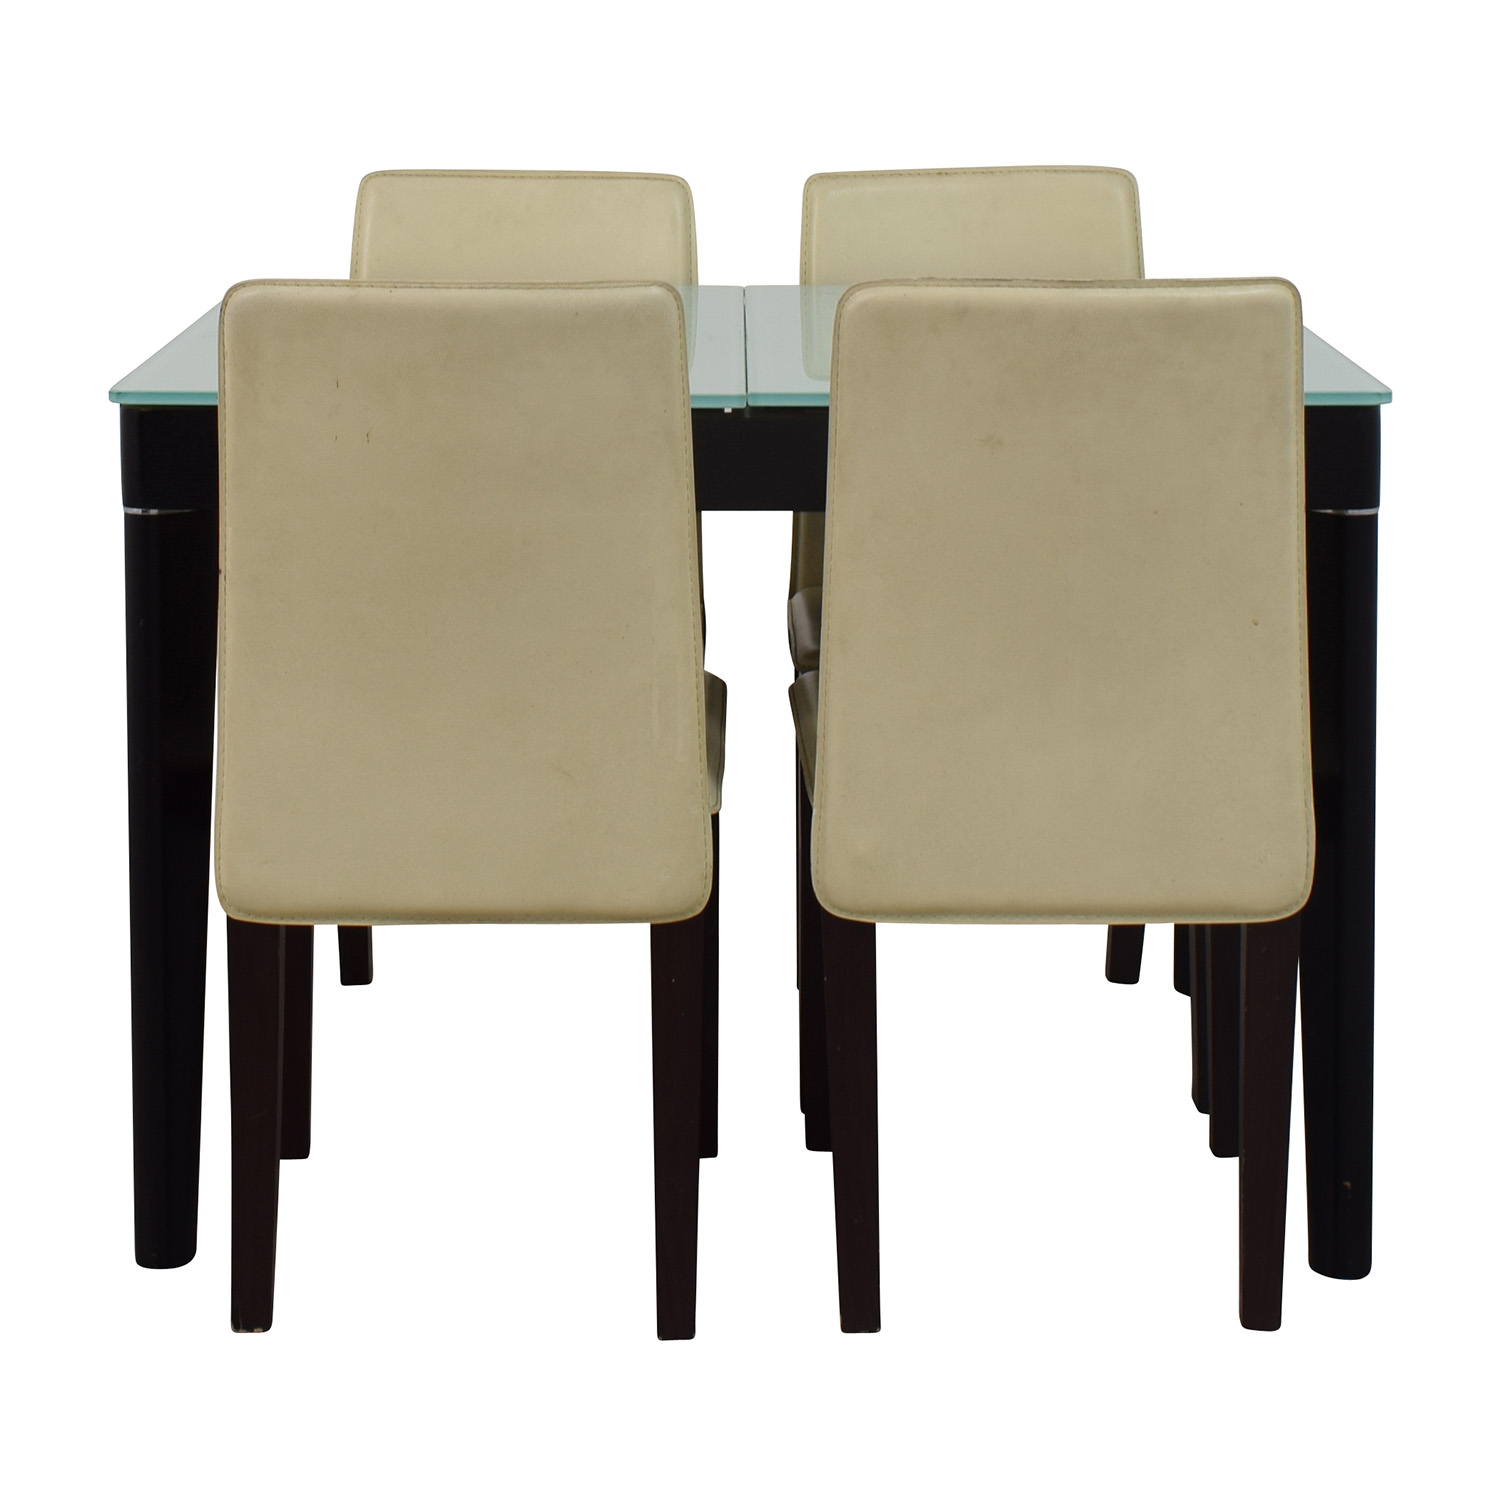 Expandable Glass and Wood Dining Set nj